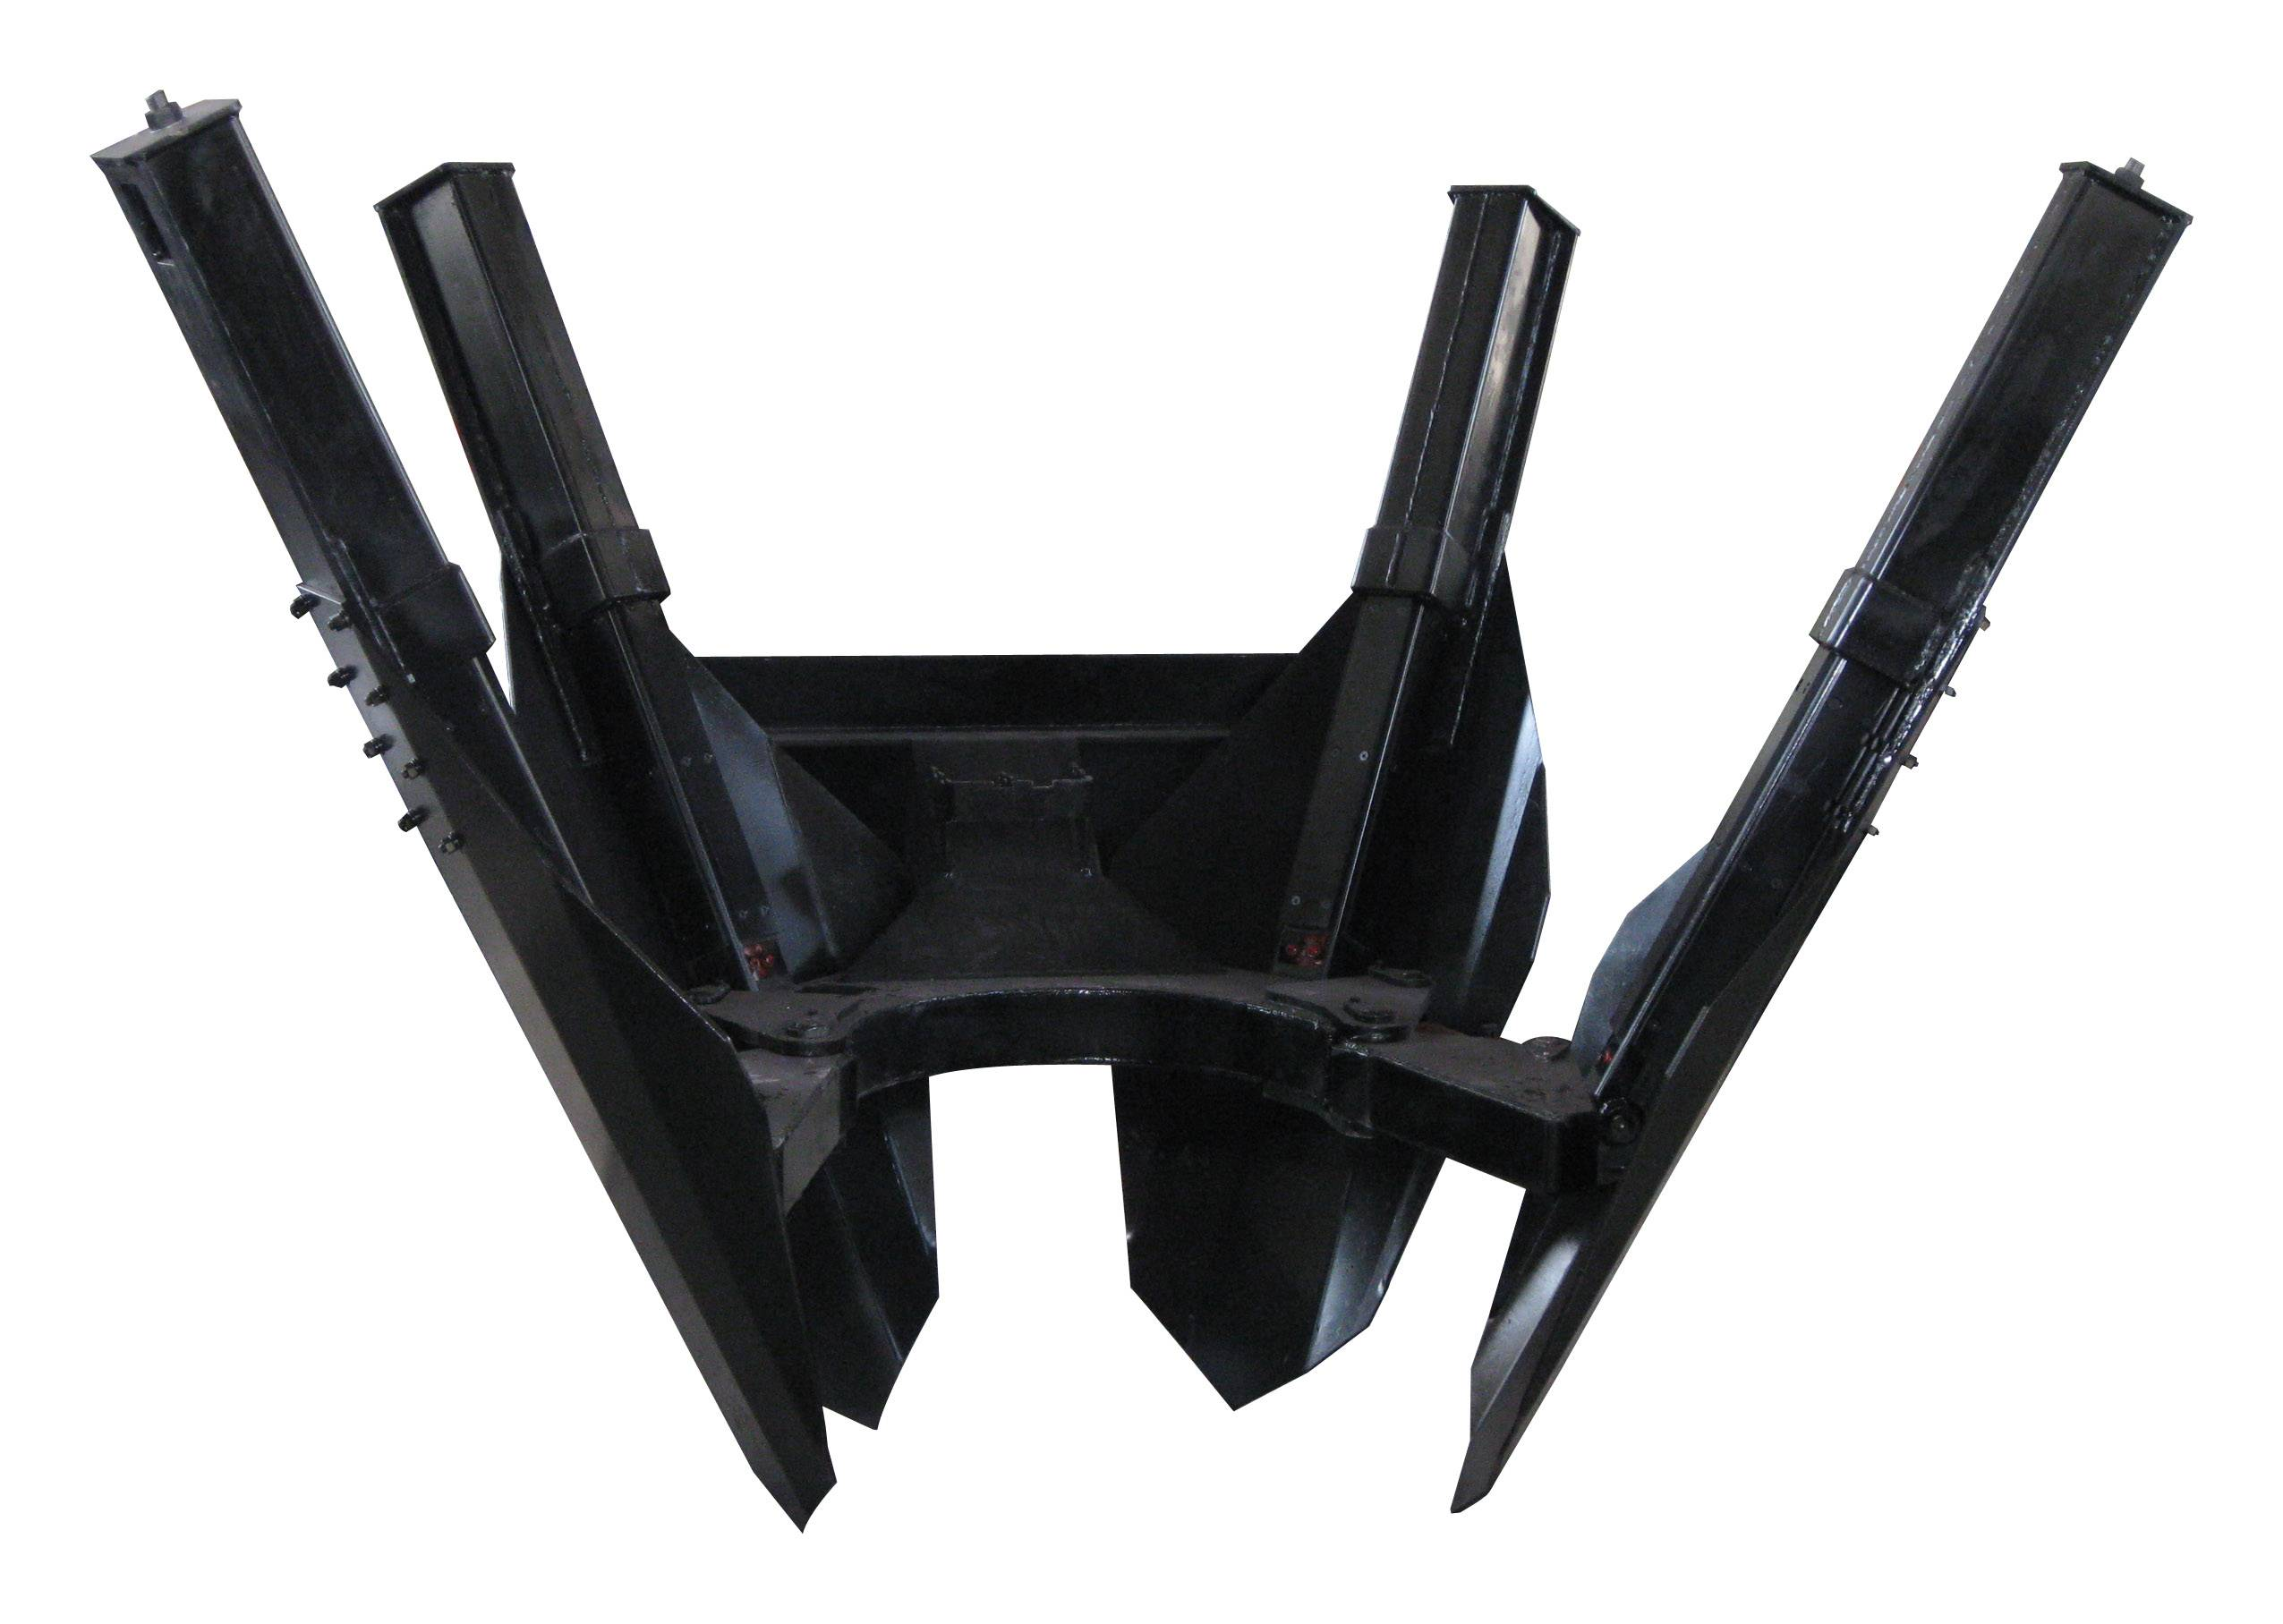 HCN 0503 series tree spade for skid steer loader